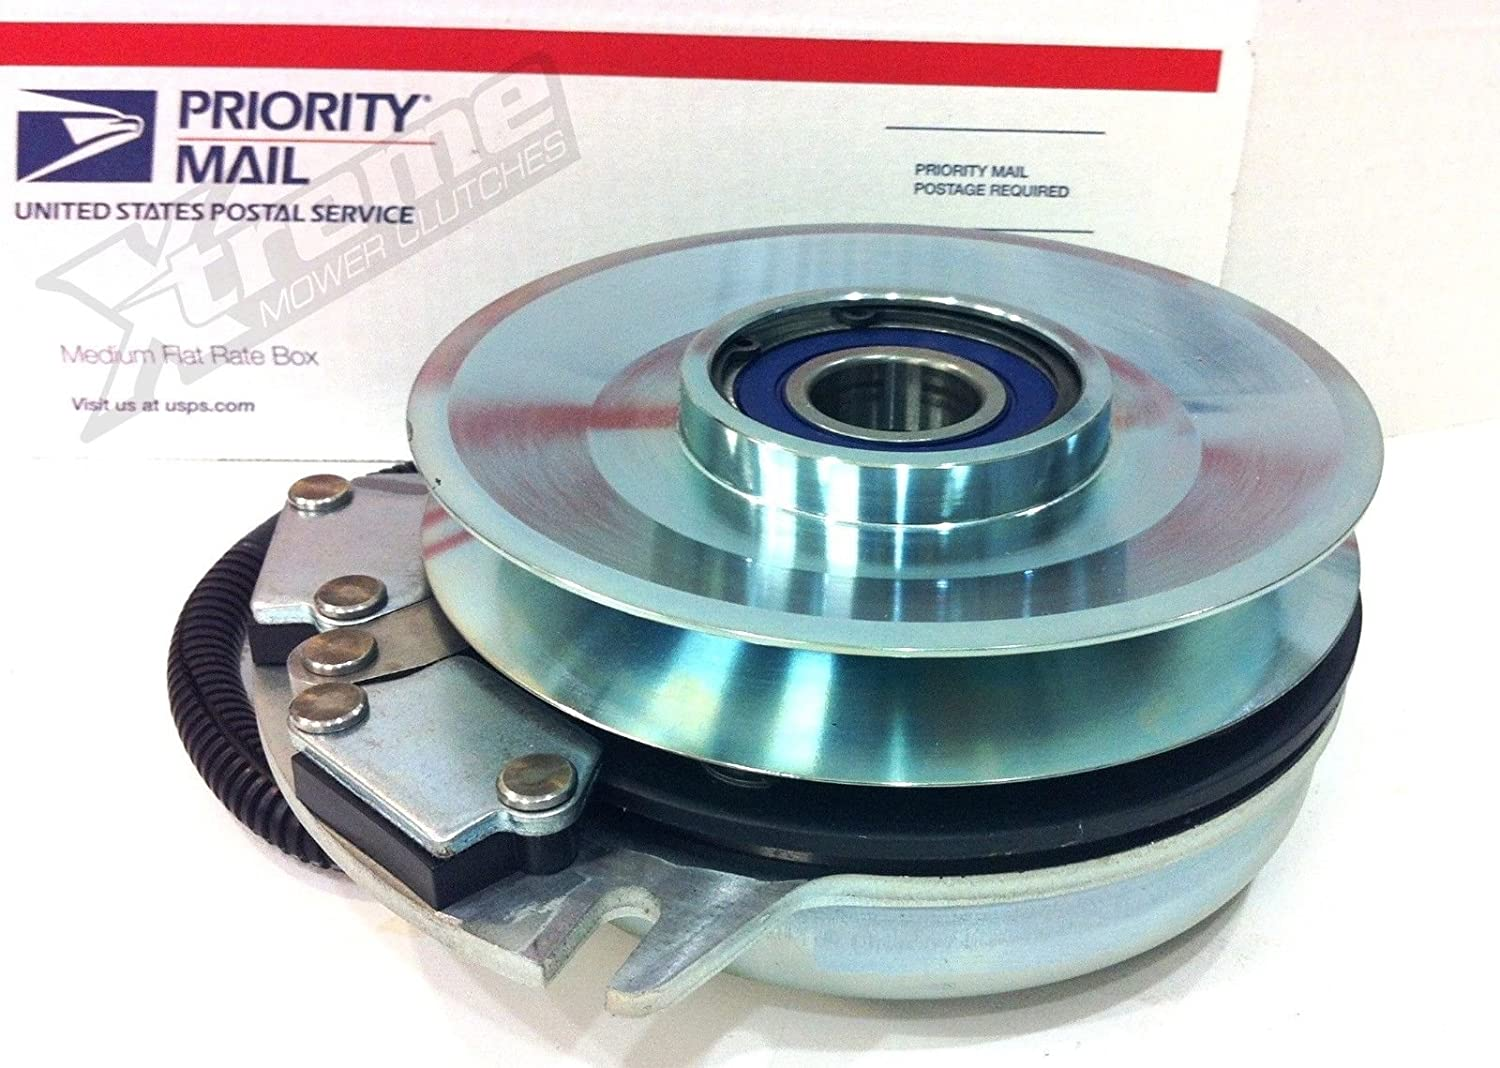 81pHlvLGtLL._SL1500_ amazon com replaces warner 5218 6 cub cadet pto clutch 917 3403 Borg Warner Clutch Catalog at mr168.co